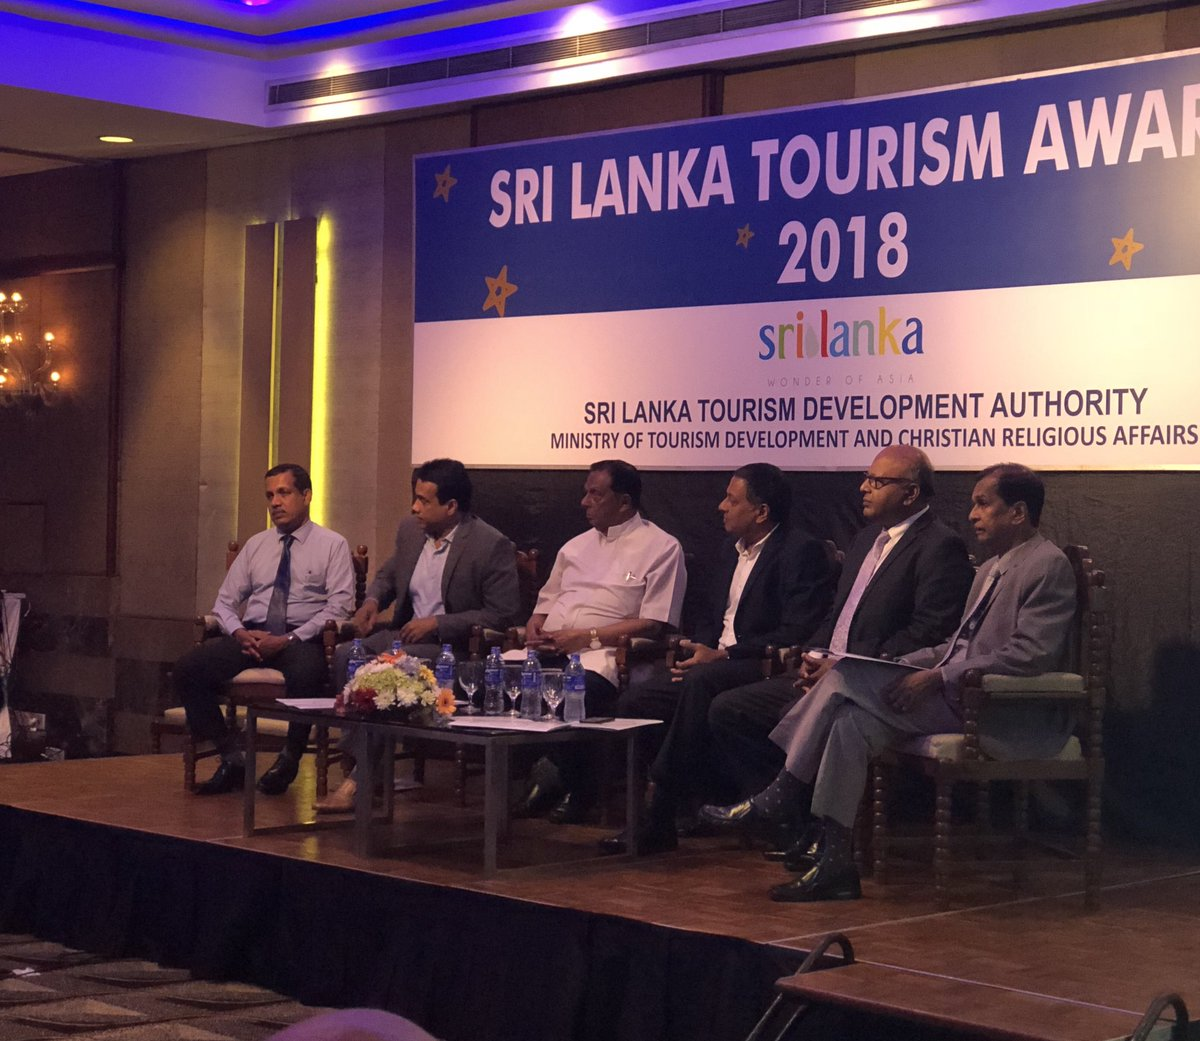 tourism and economic growth of sri lanka tourism essay Tourism can also distort a local economy, creating lots of low paid service industry jobs, sometimes at the expense of potentially more skilled and lucrative industries, such as high-tech or manufacturing.